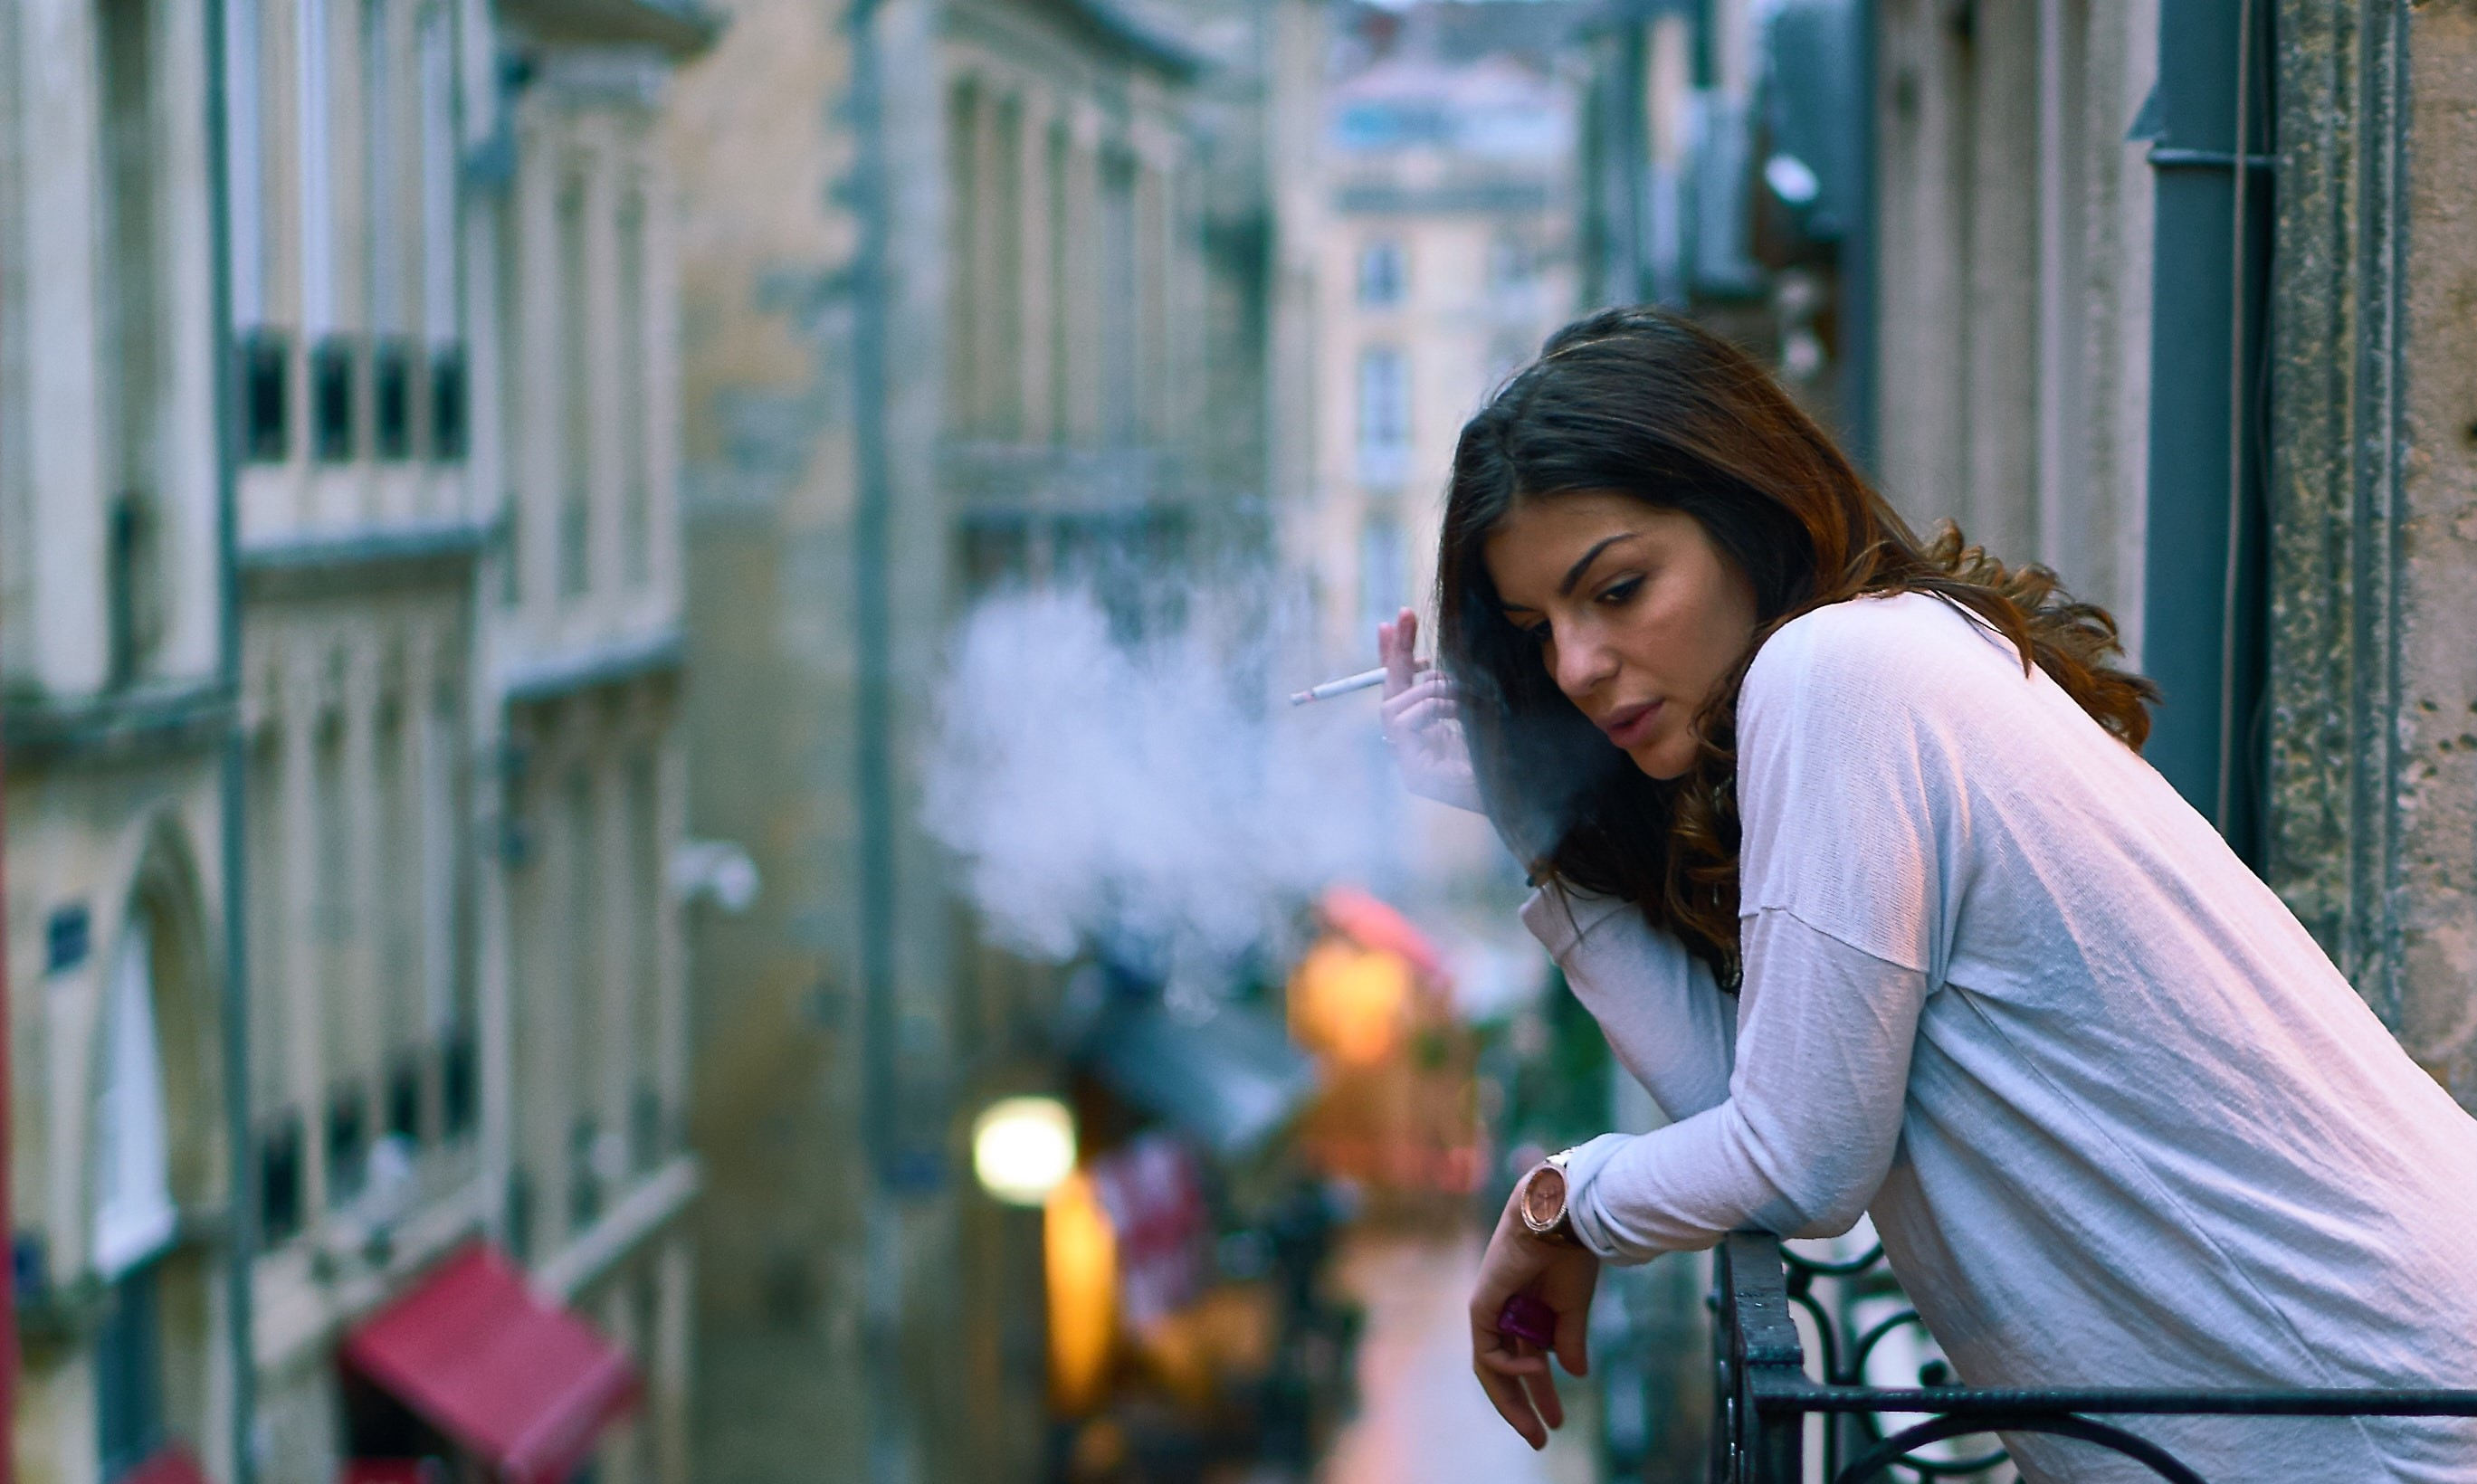 Effects of Smoking Cigarettes or Vaping While Pregnant